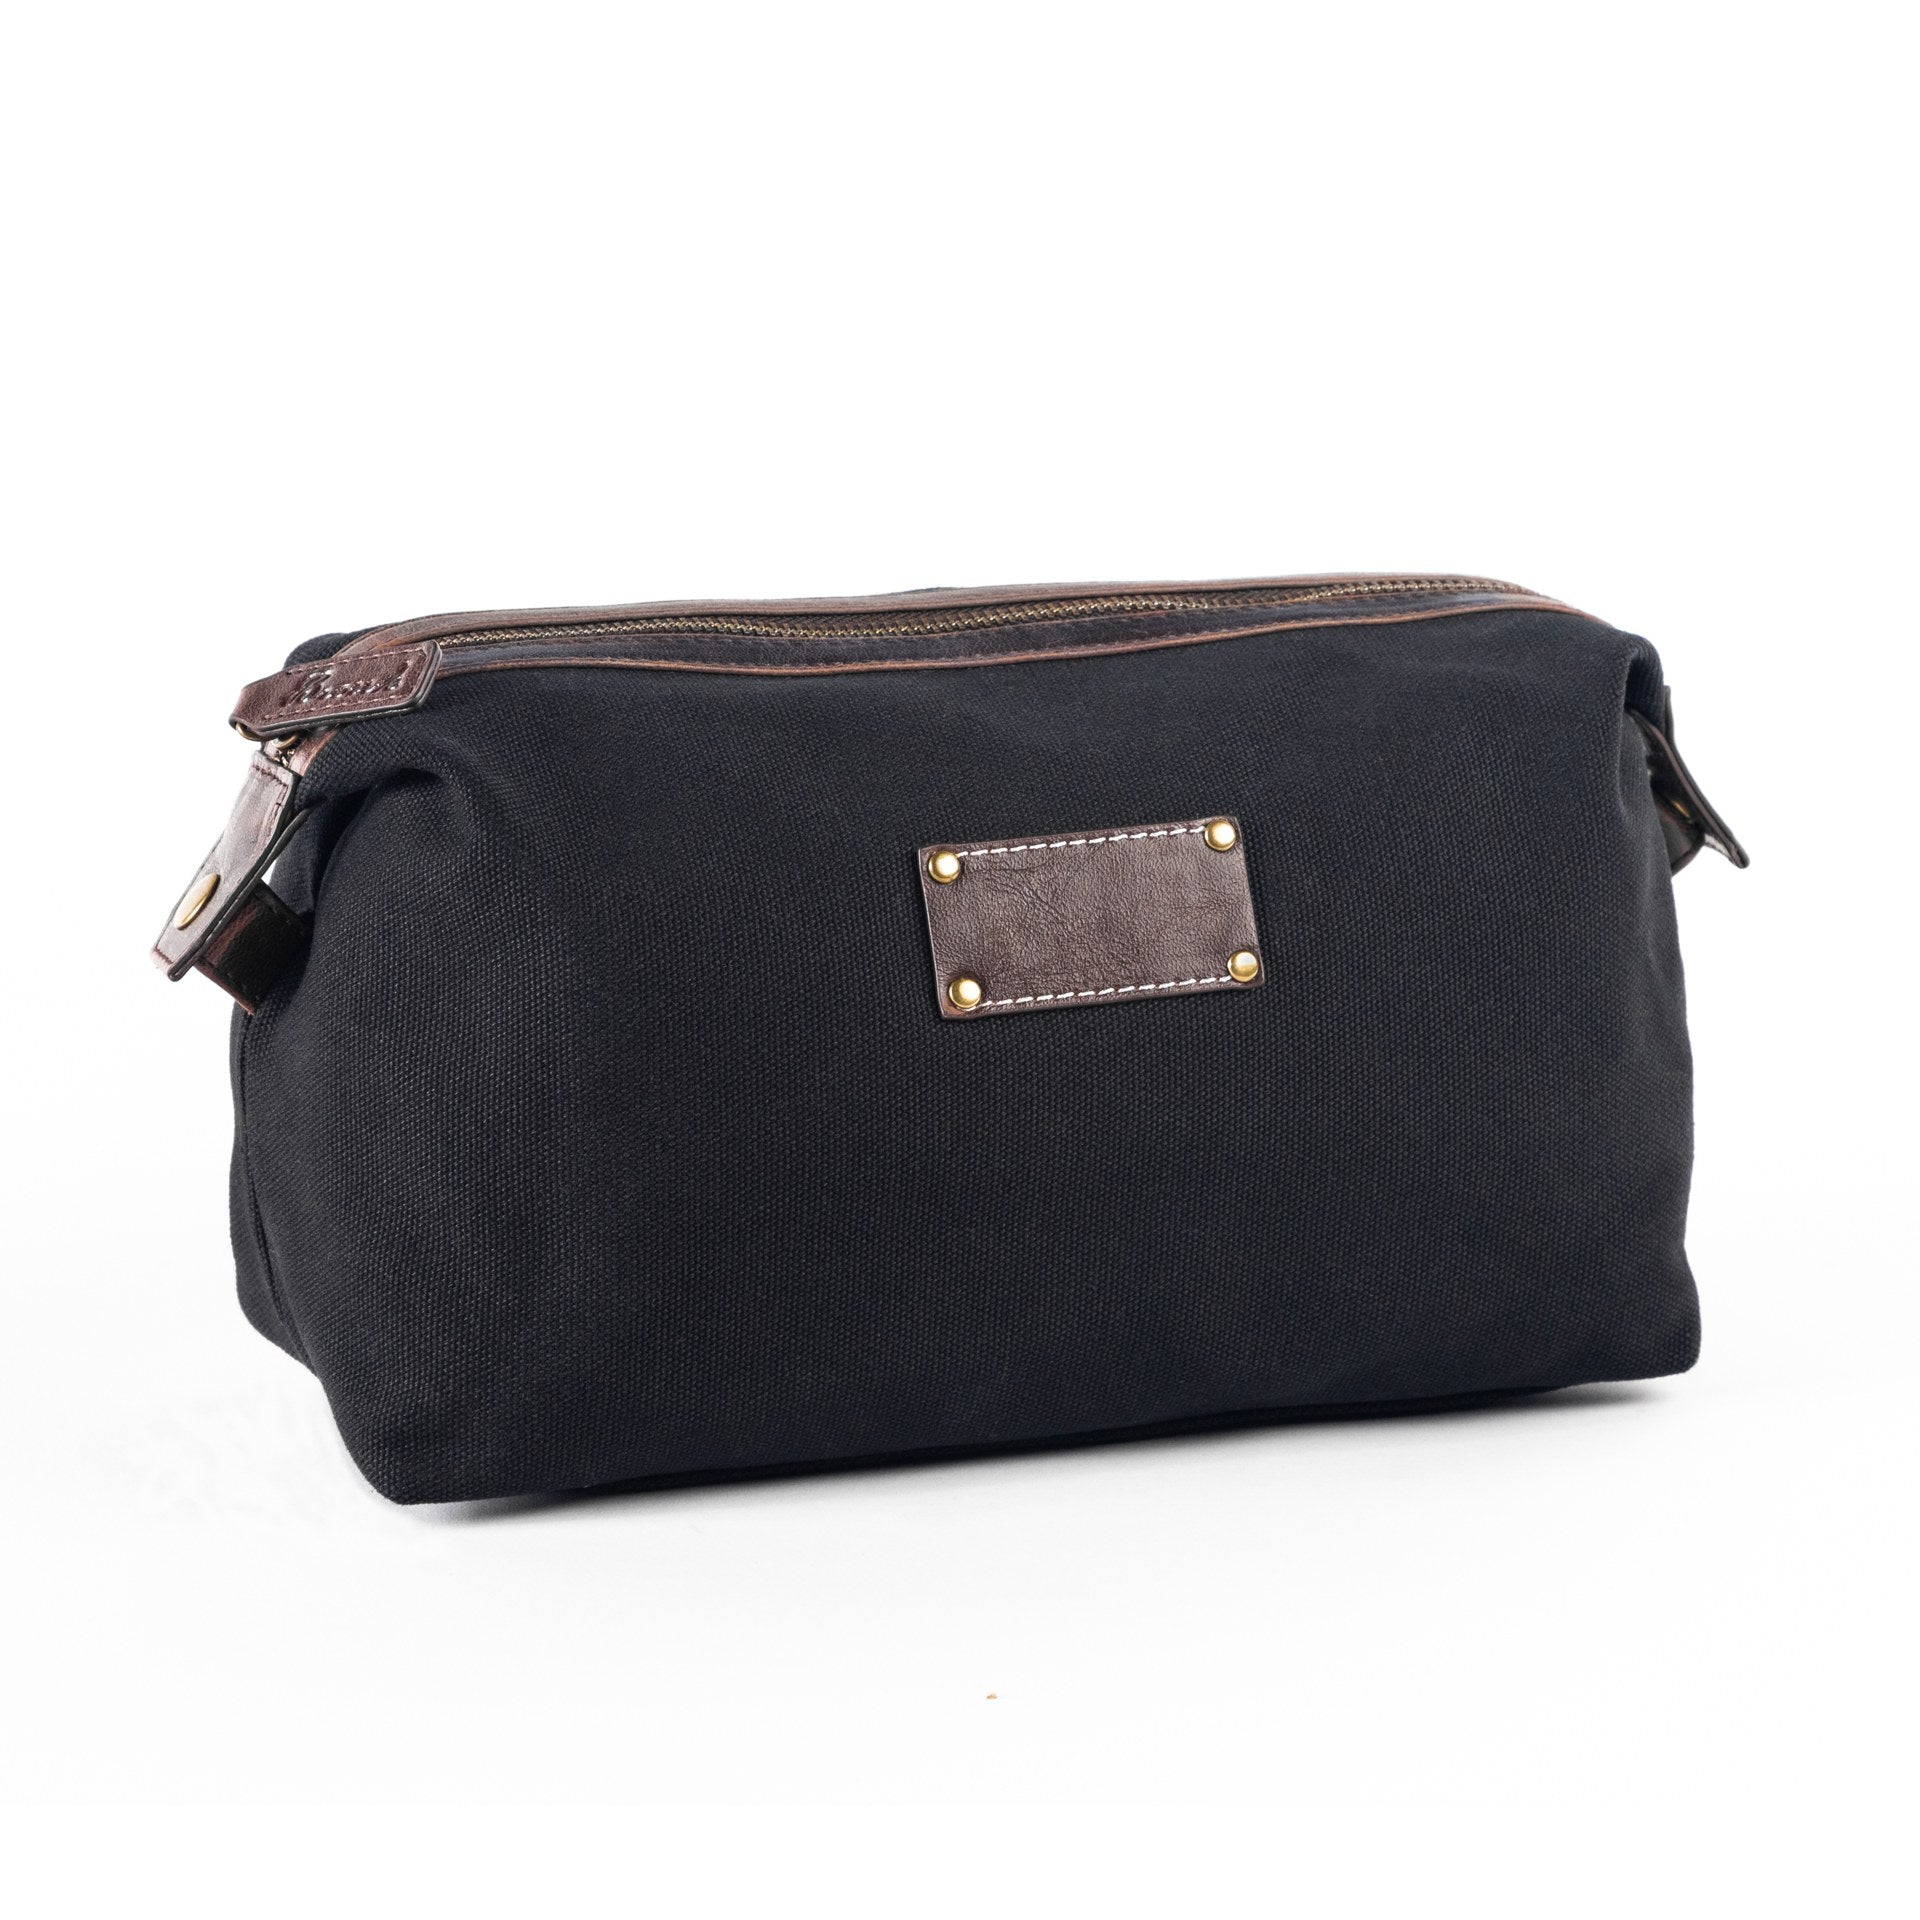 Men's Toiletry Bag - Provisions, LLC